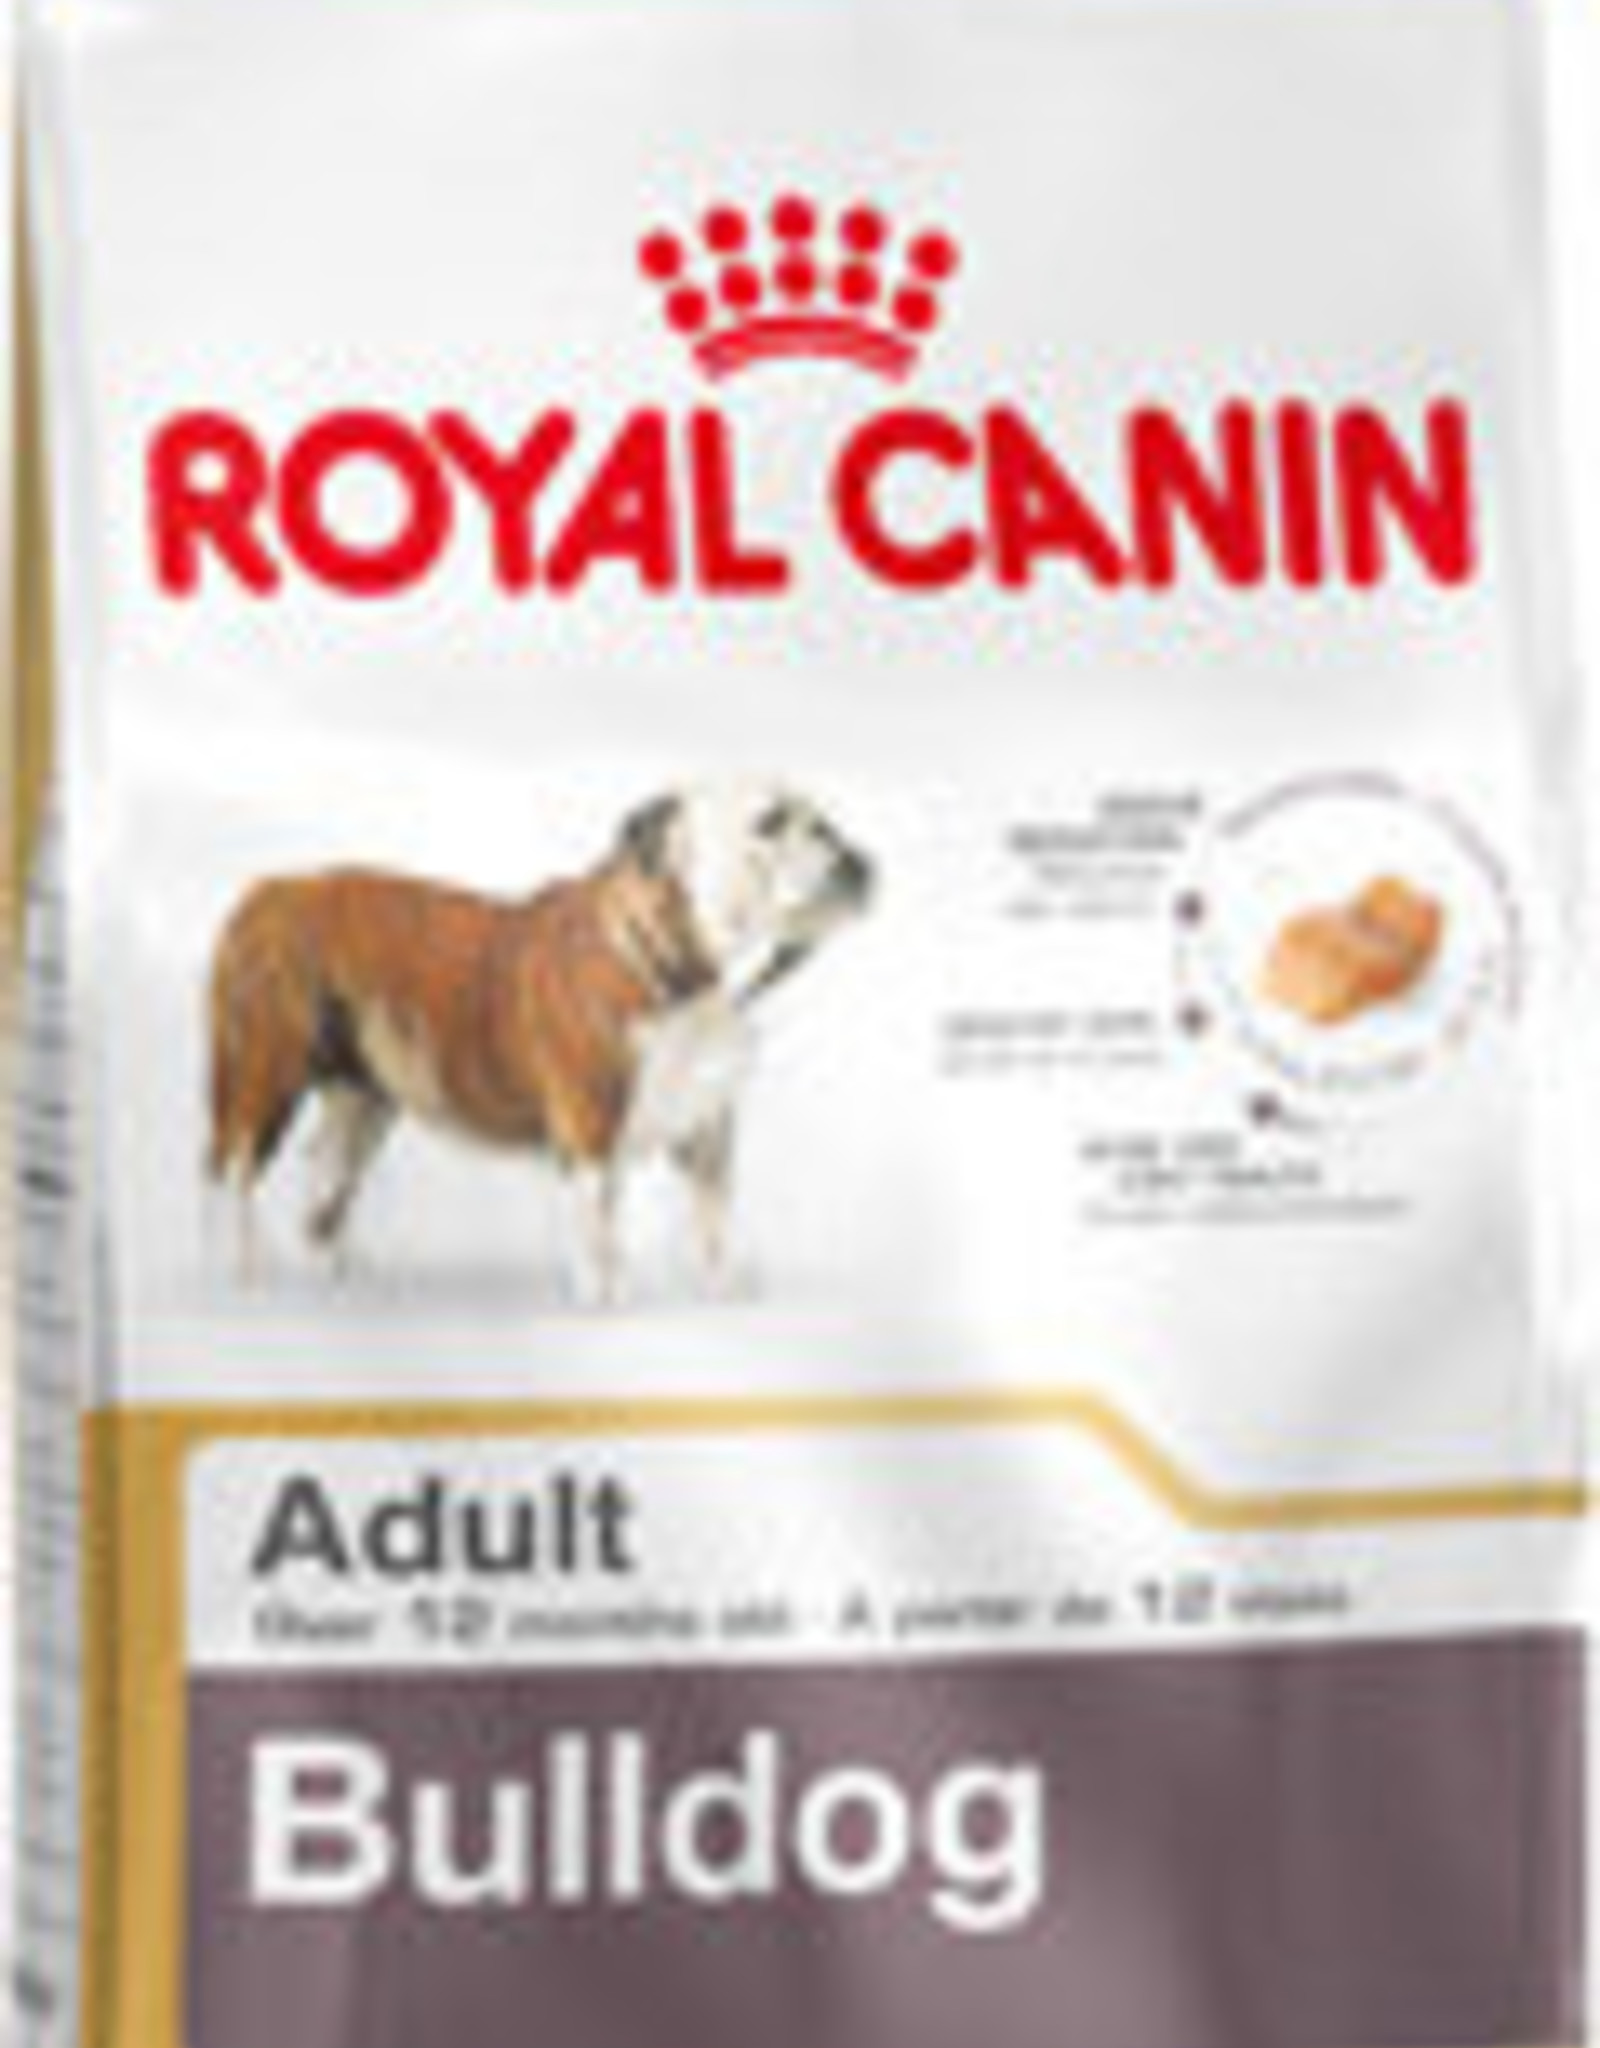 Royal Canin Royal Canin Bhn Bulldog English 12kg